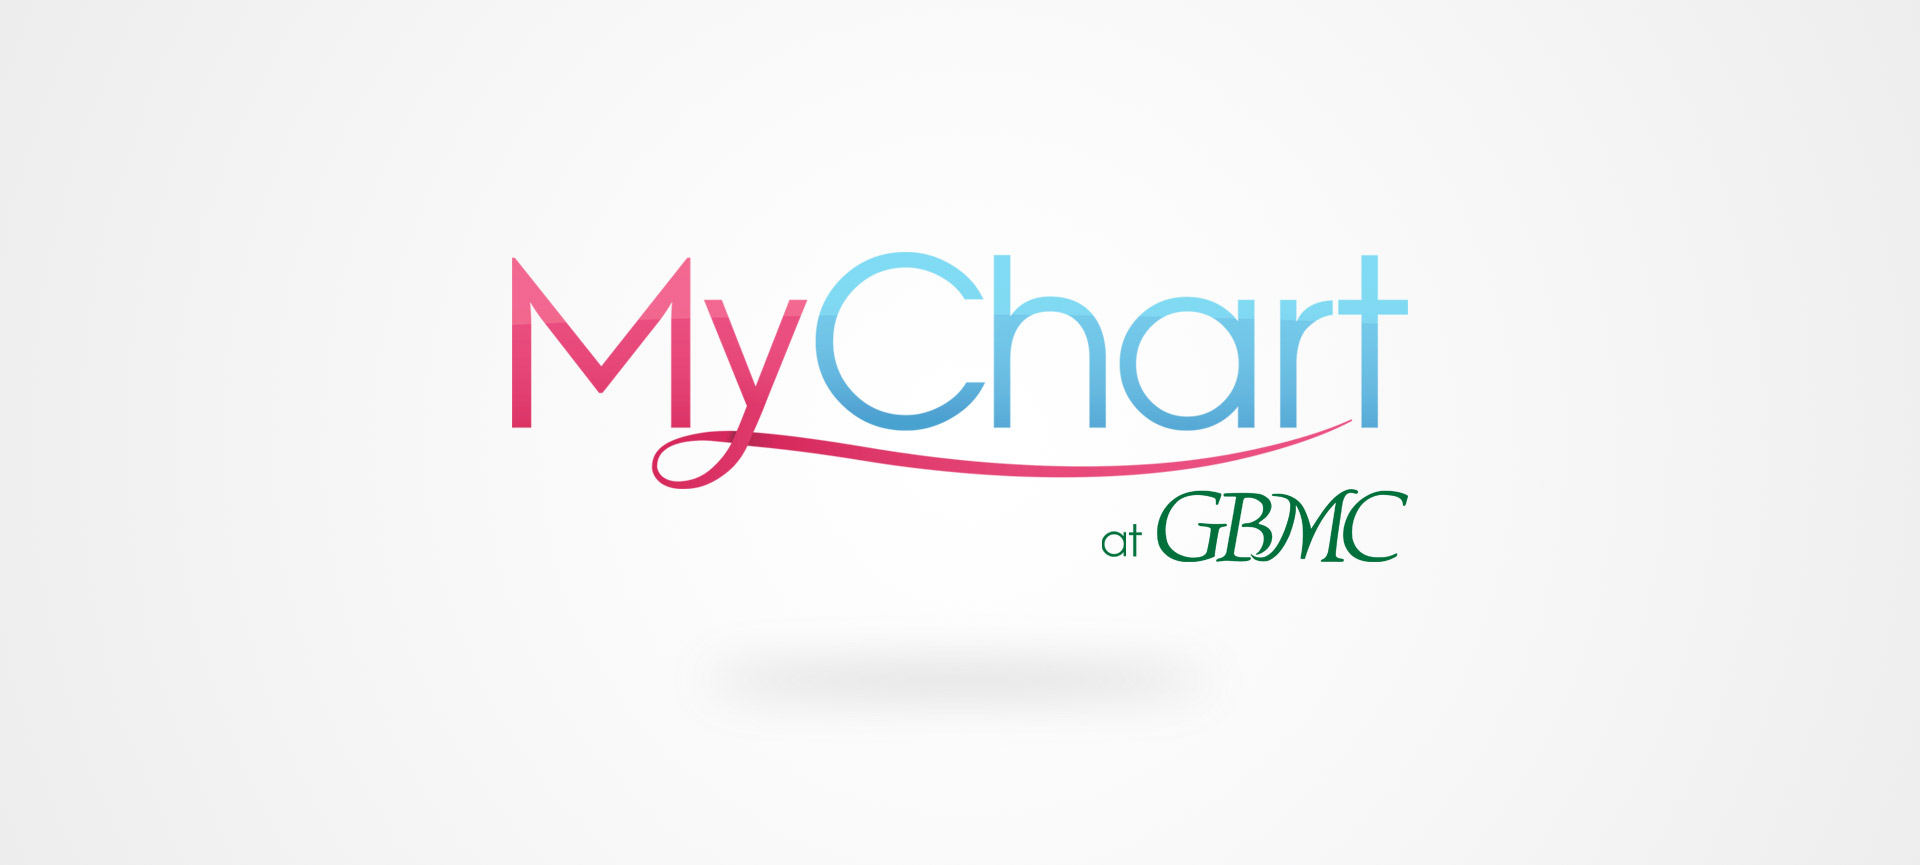 Mychart At Gbmc Patient Portal Healthcare Towson Baltimore Md